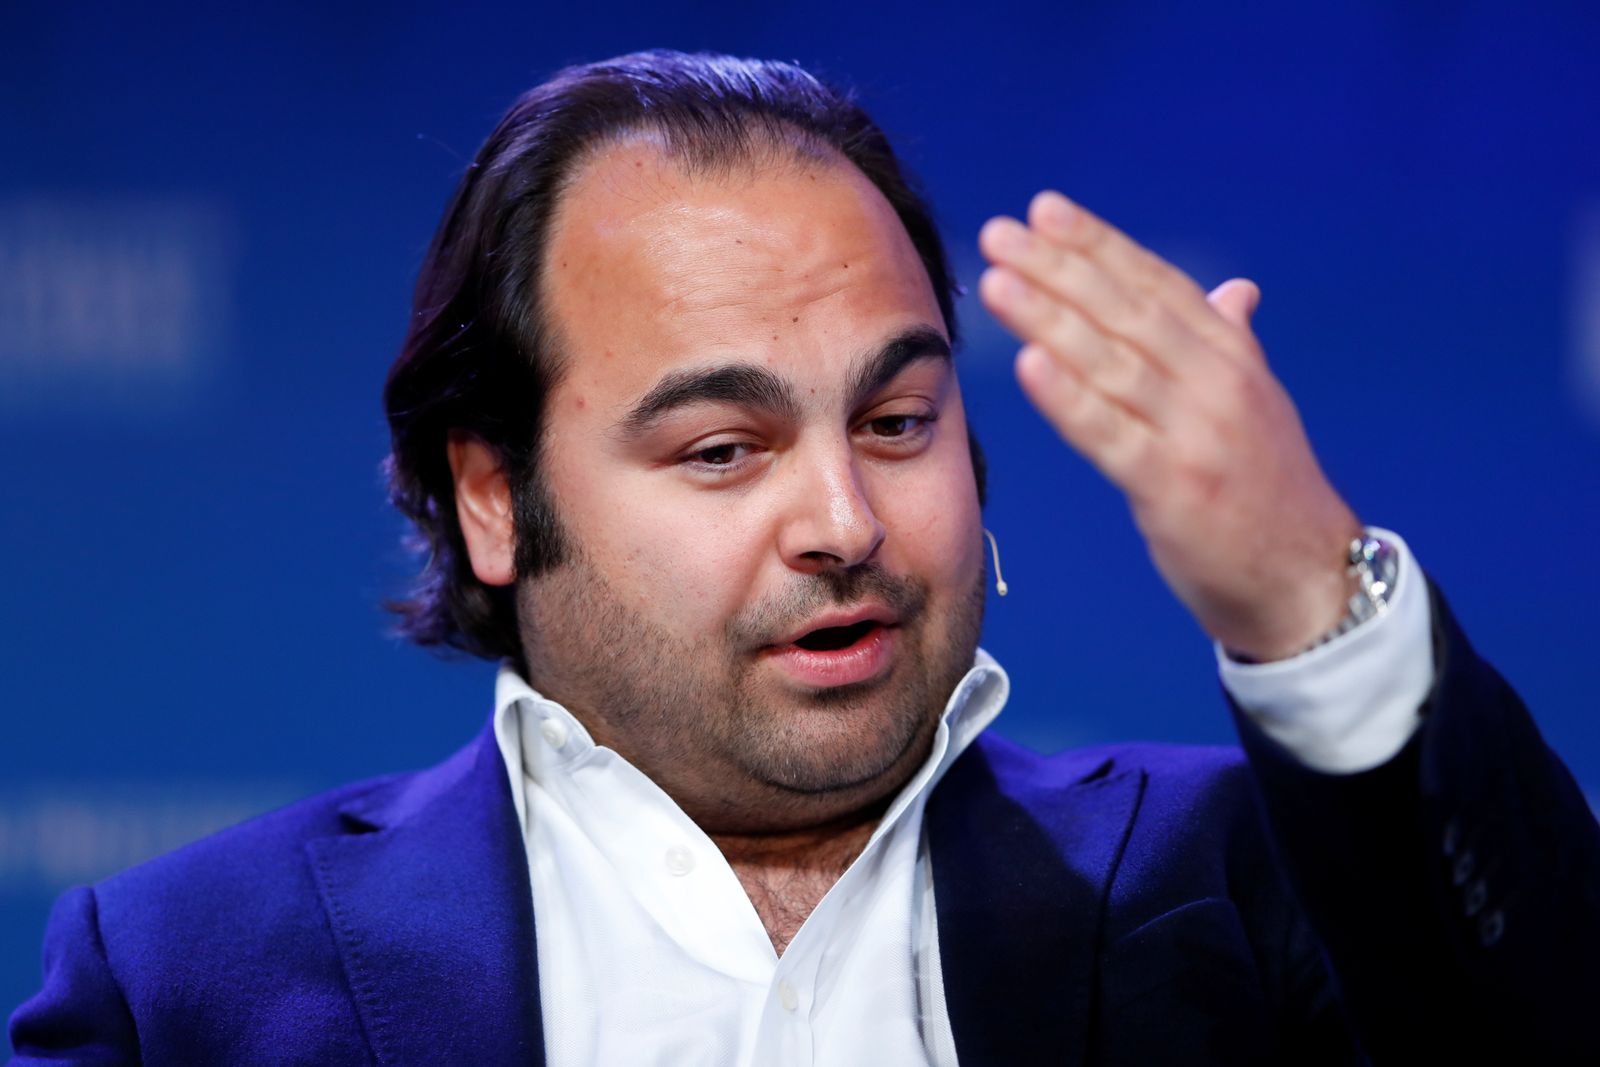 Hakan Koc Co-Founder and Co-CEO, AUTO1 Group during the Milken Institute's 22nd annual Global Conference in Beverly Hills, California